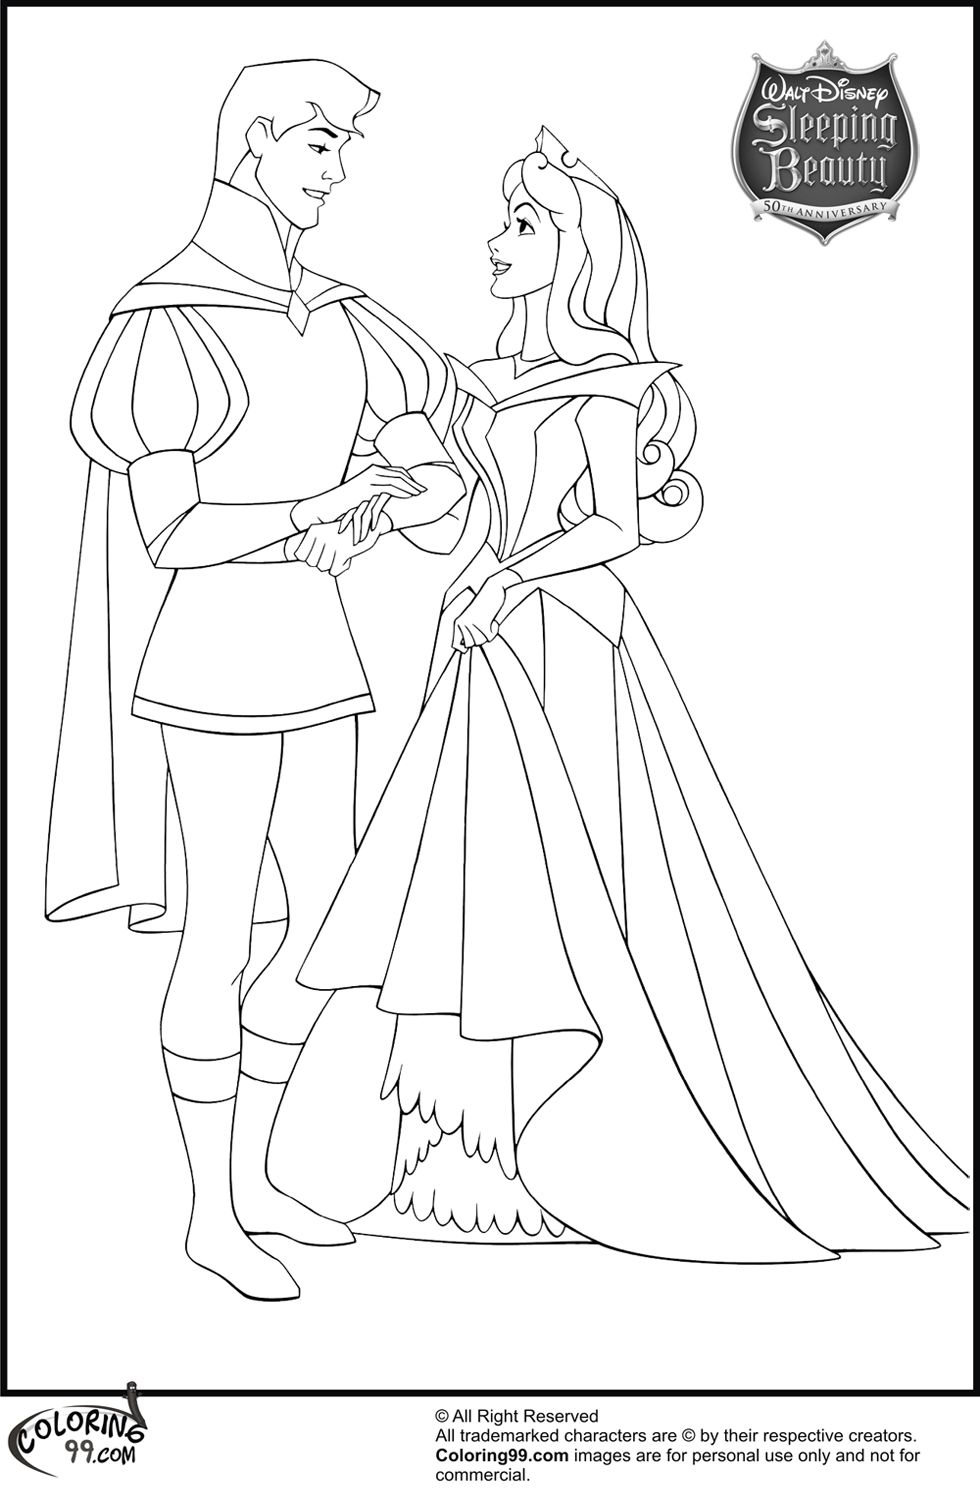 Disney Princess Aurora Coloring Pages Disney Princess Coloring Pages Disney Princess Colors Princess Coloring Pages